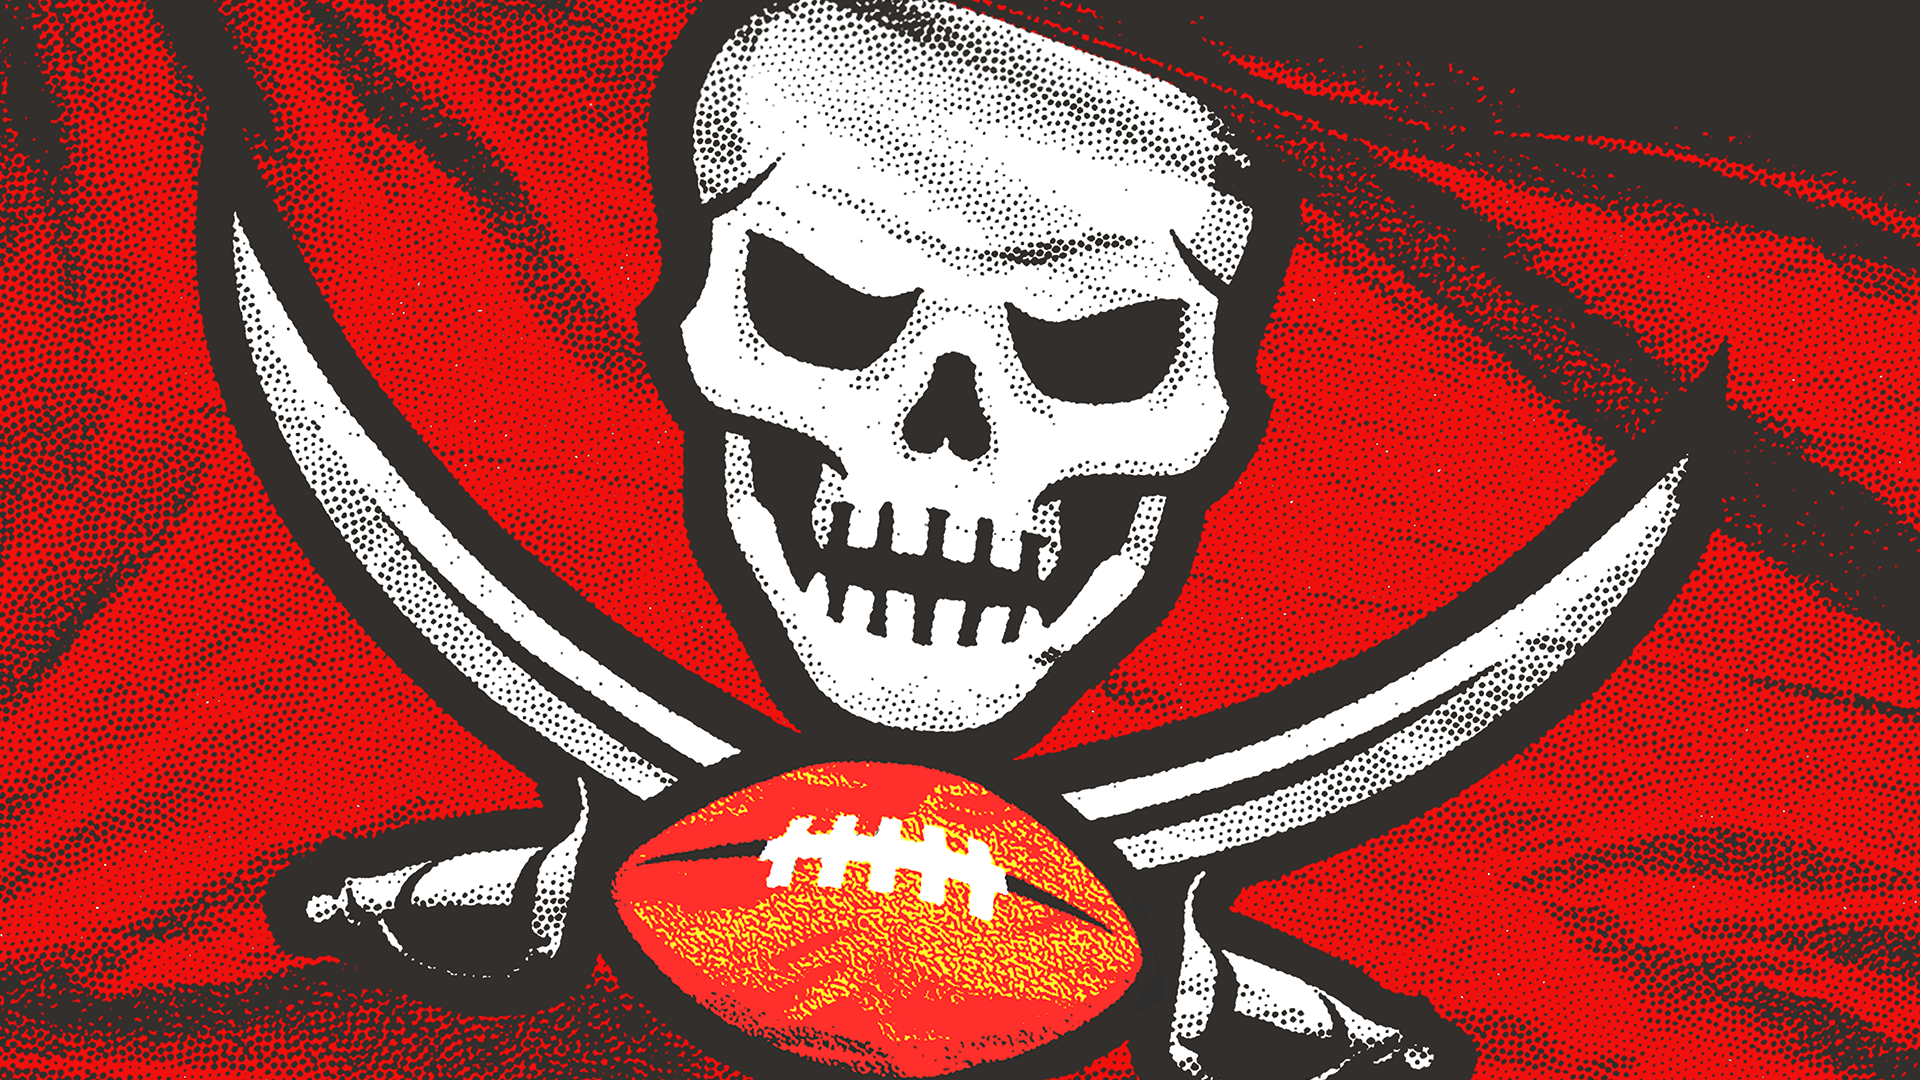 tampa bay buccaneers zoom backgrounds tampa bay buccaneers zoom backgrounds